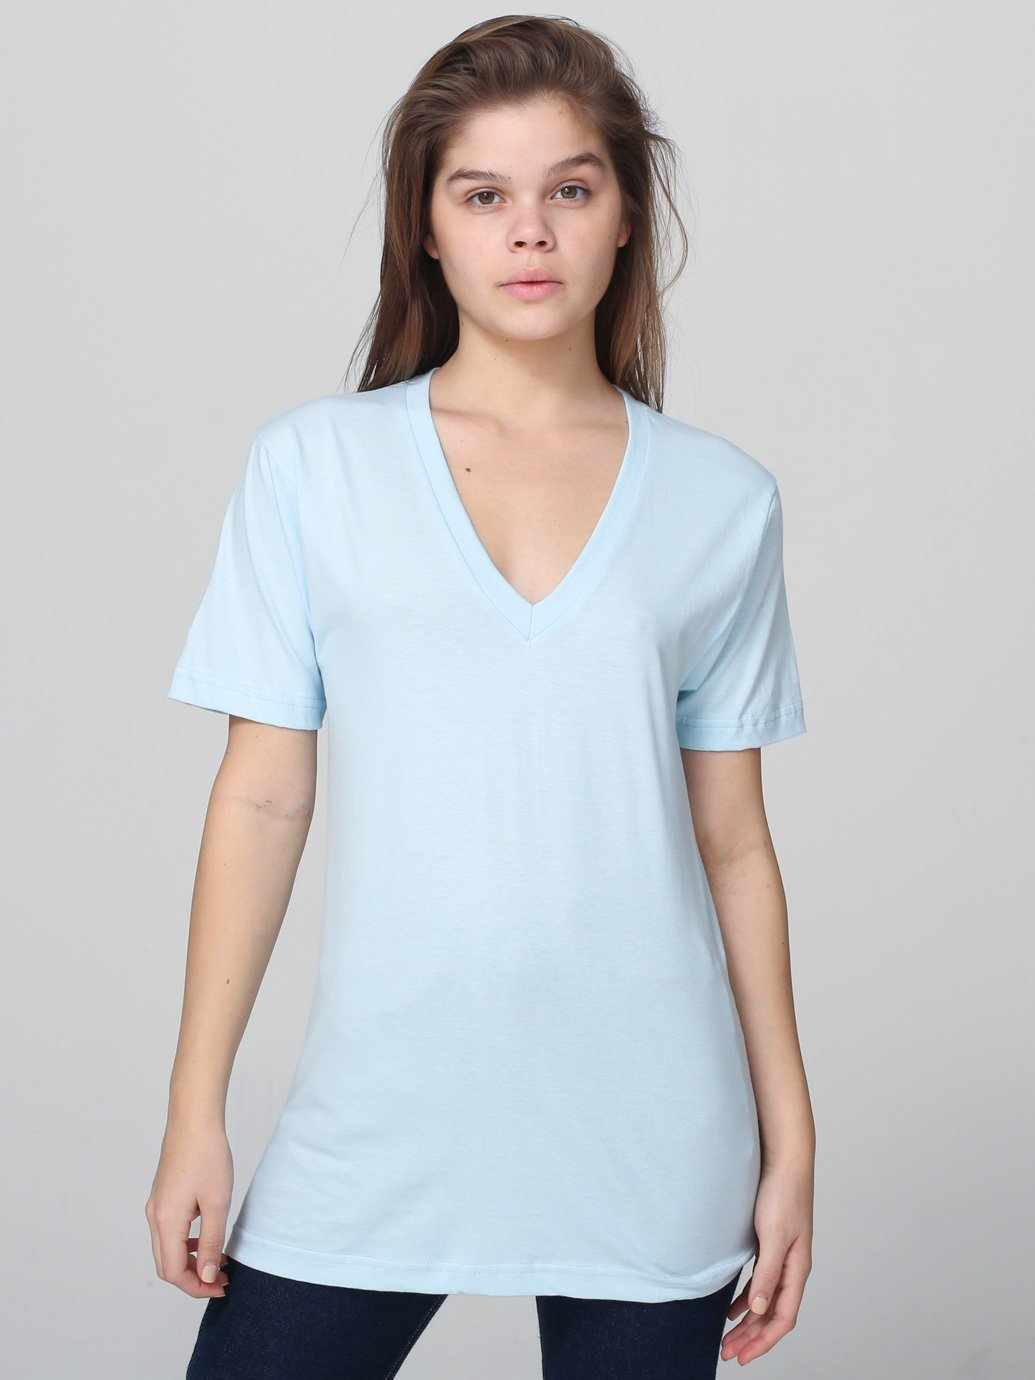 American Apparel Unisex Fine Jersey V Neck T Shirt In Blue